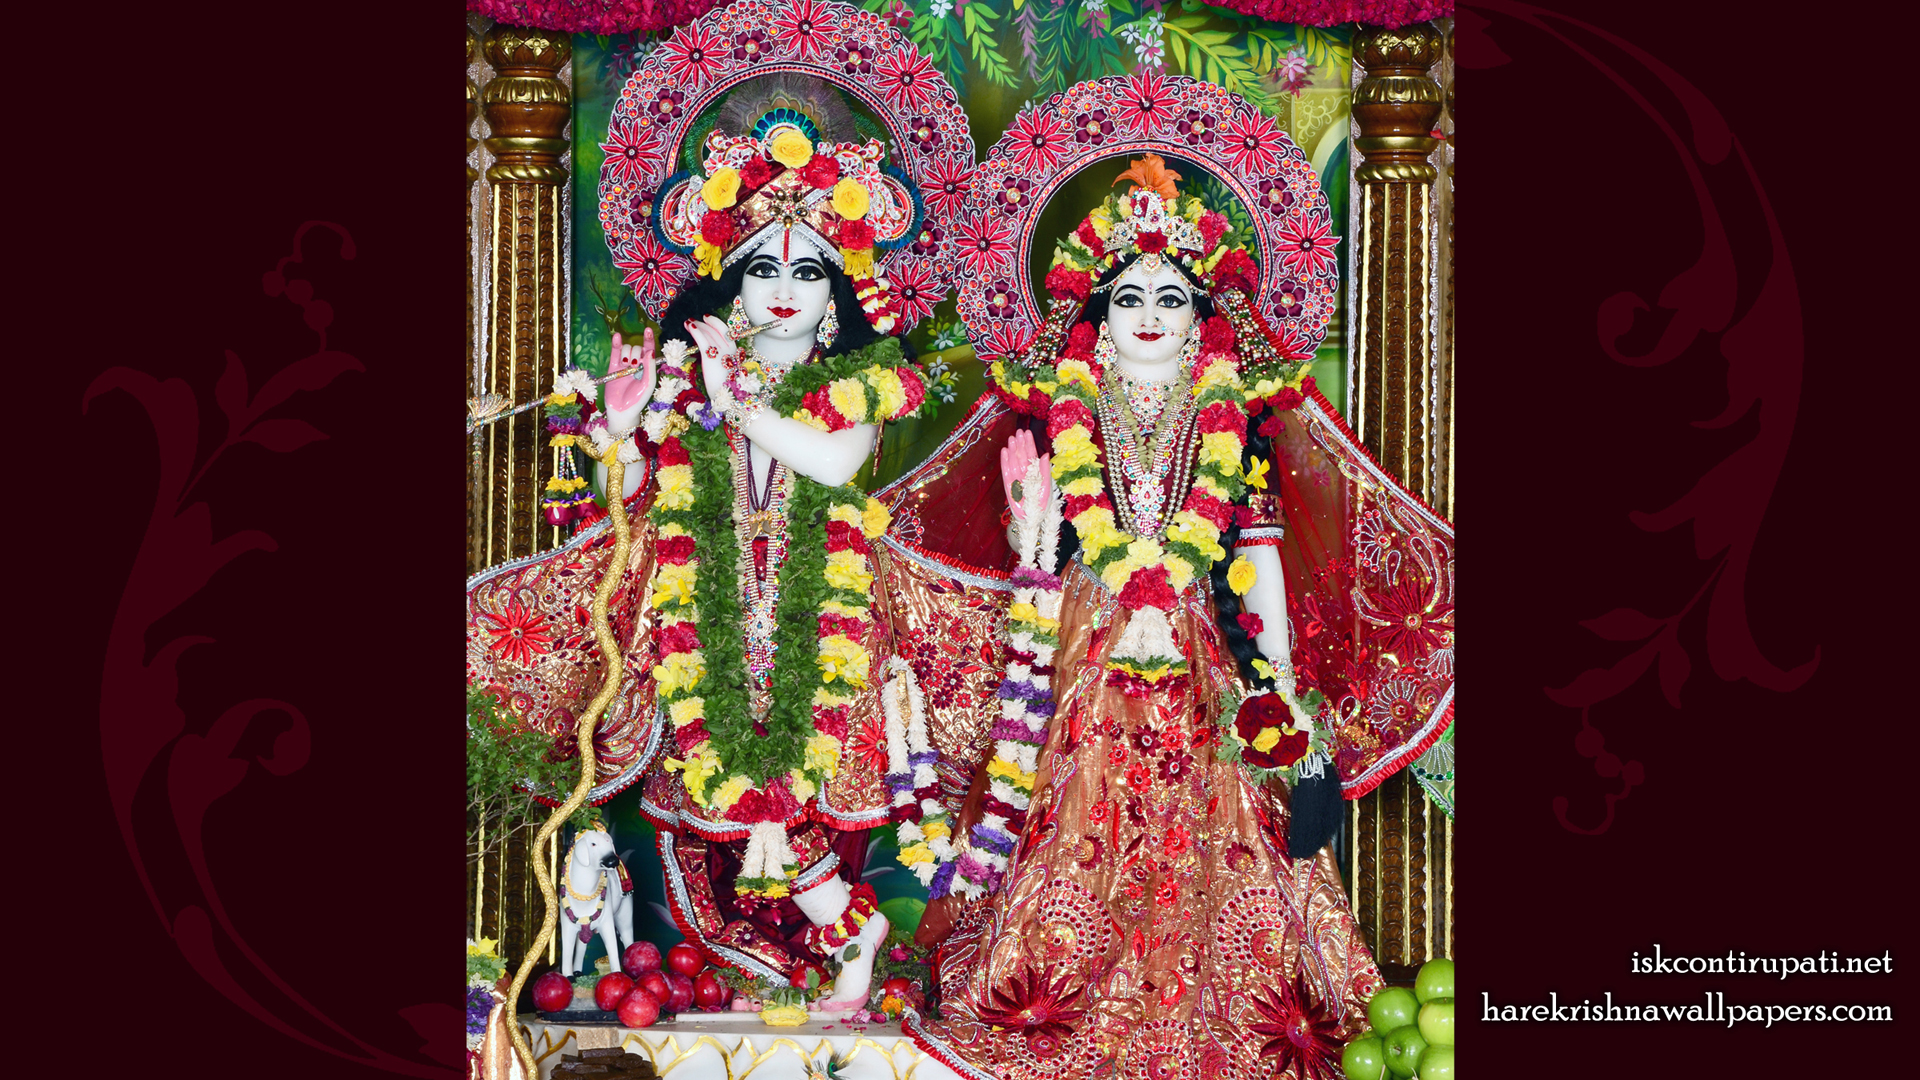 Sri Sri Radha Govinda Wallpaper (010) Size 1920x1080 Download